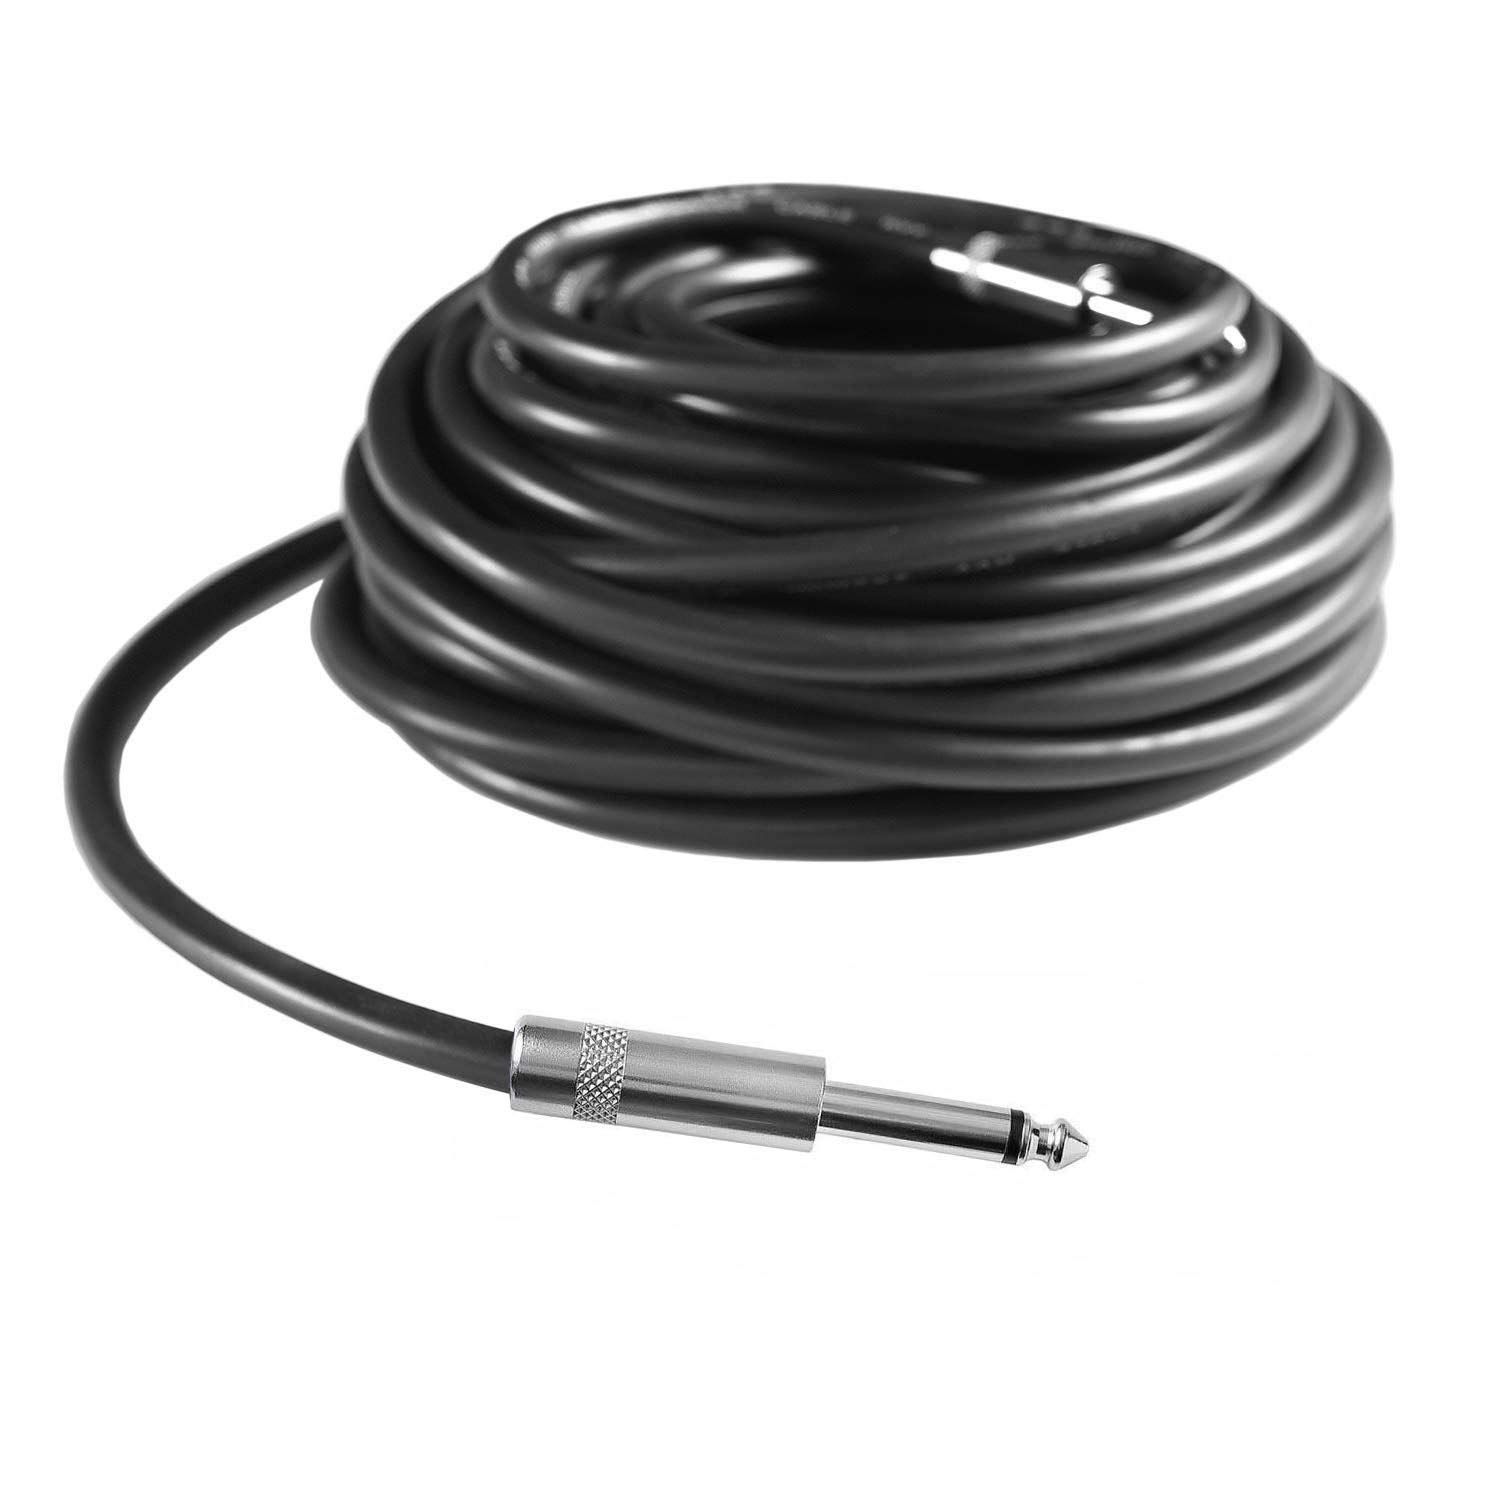 Yoico 2Pcs 100 Feet Professional 1//4 to 1//4 Speaker Cables Pair 100 ft 12 Gauge 1//4 Male Inch Audio Amplifier Connection Heavy Duty Cord Wire